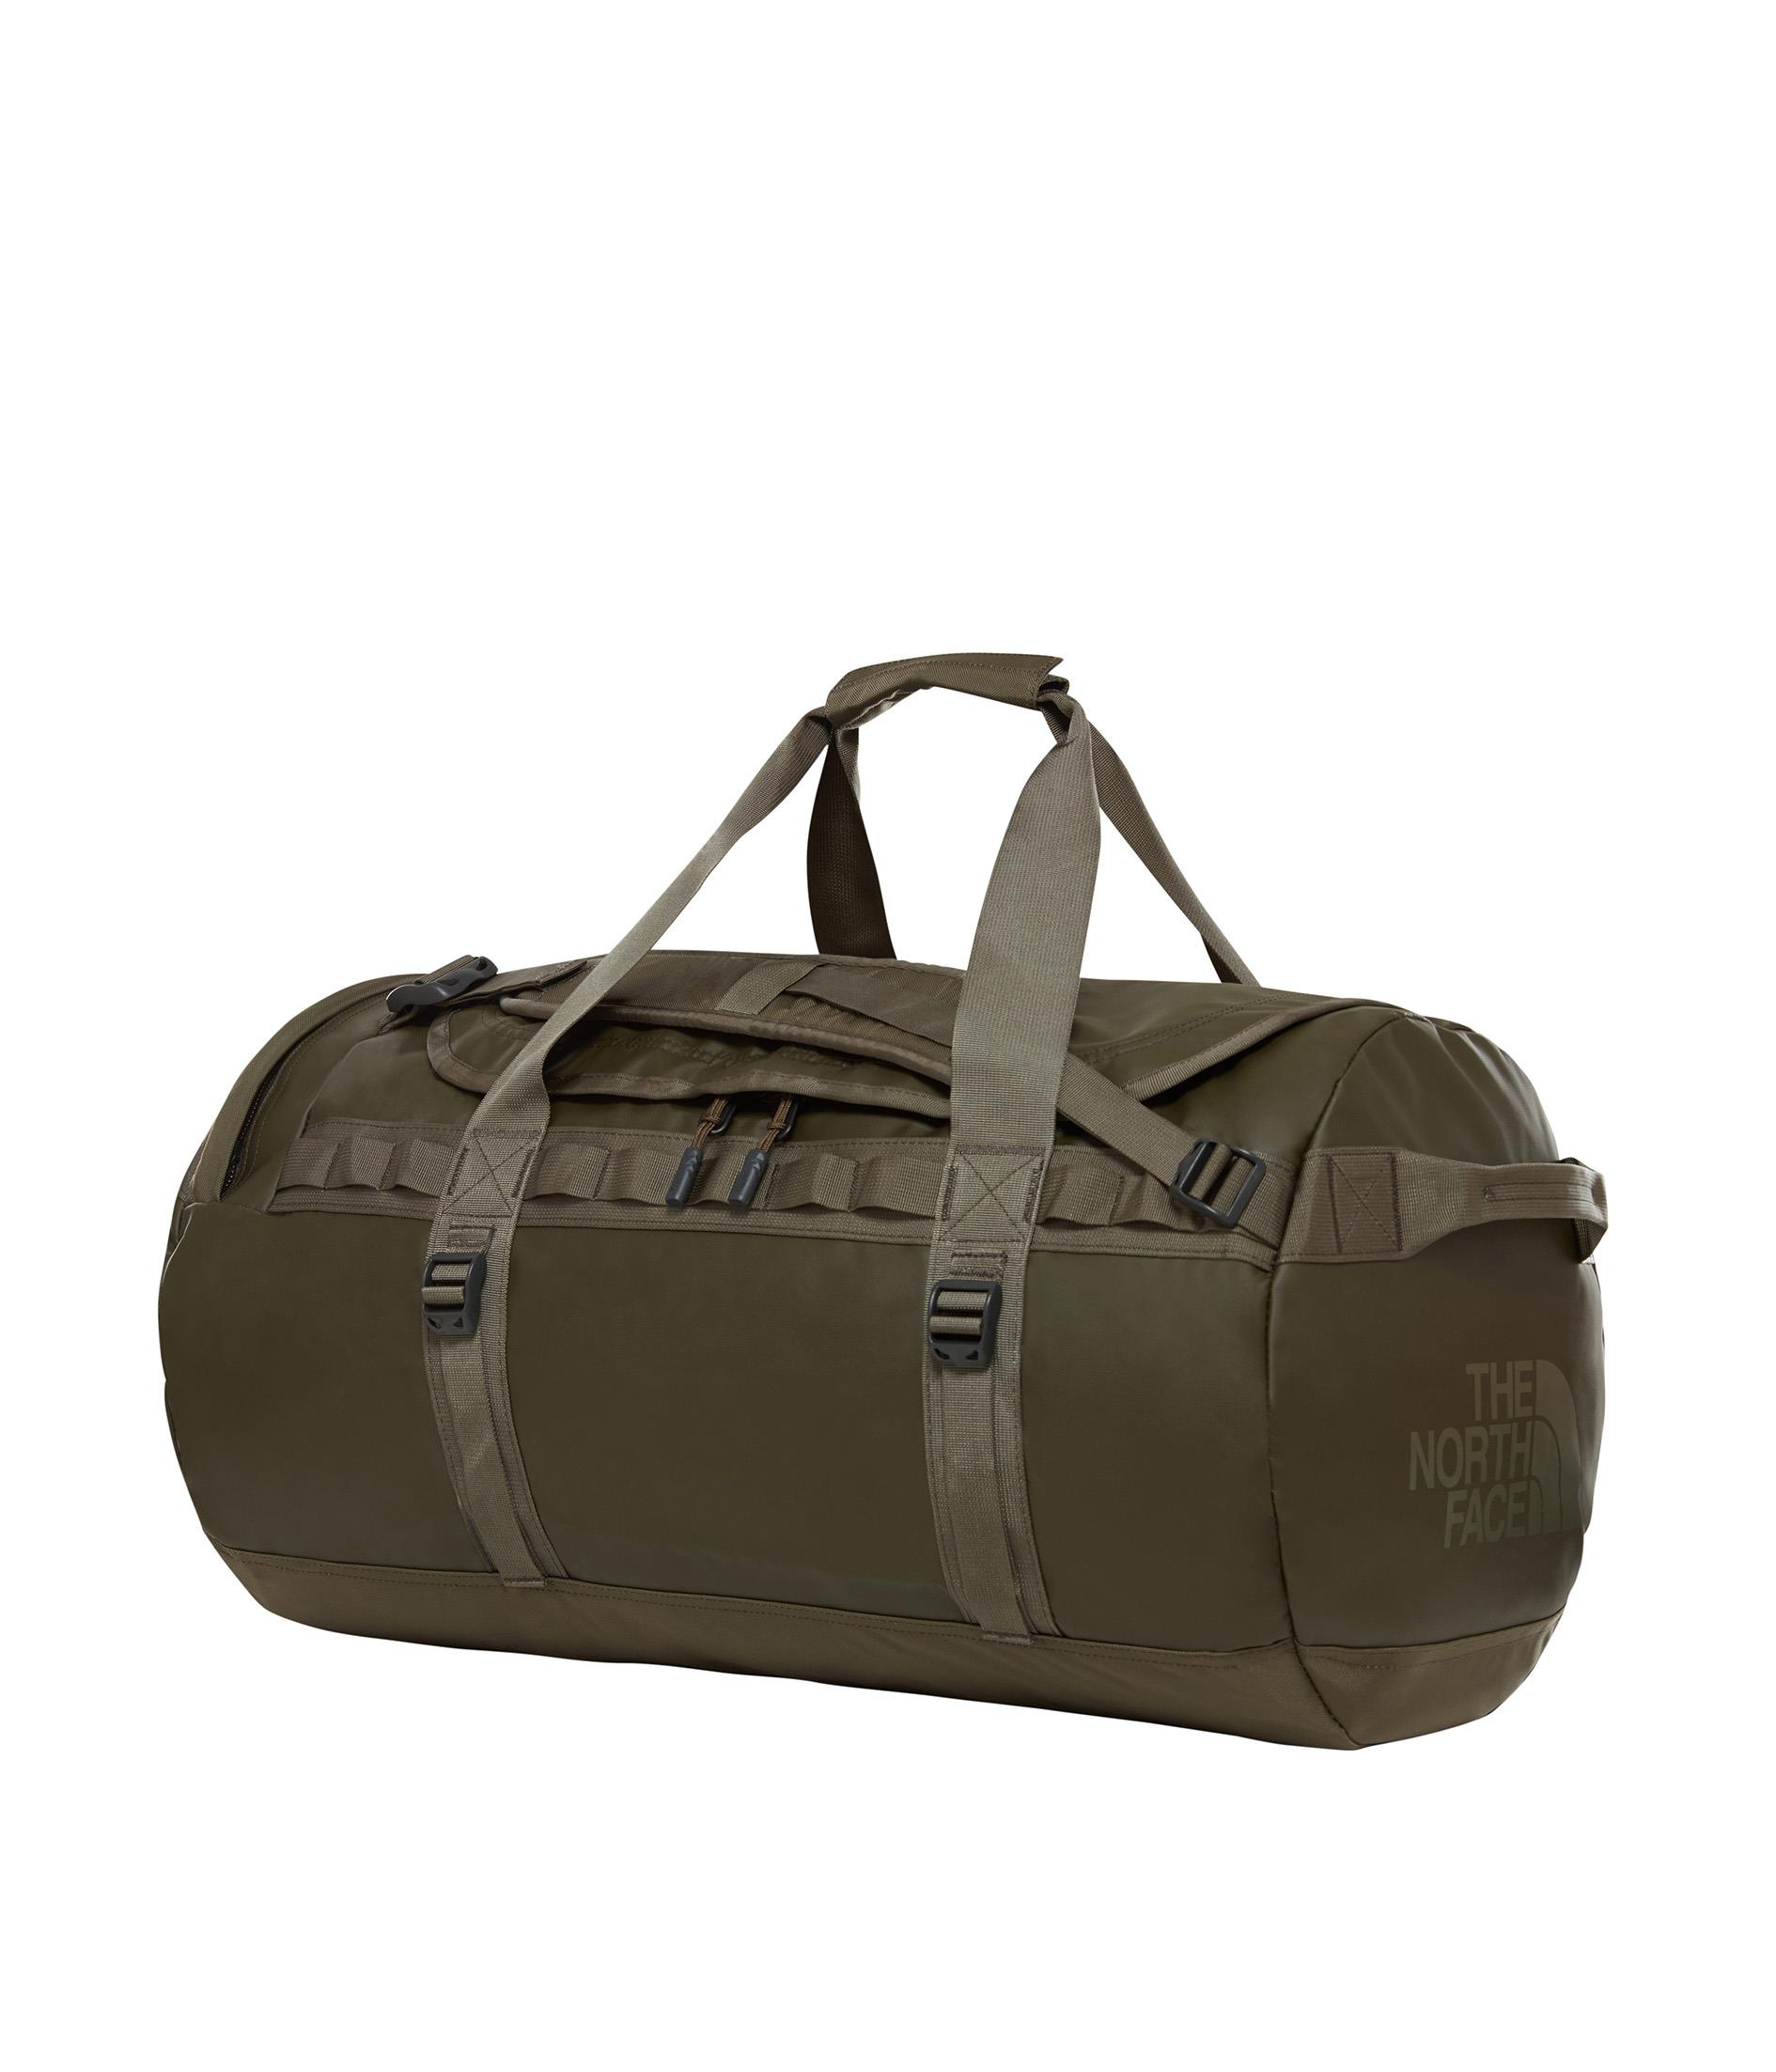 The Northface Base Camp Duffel - Erkek T93Etp79L Çanta